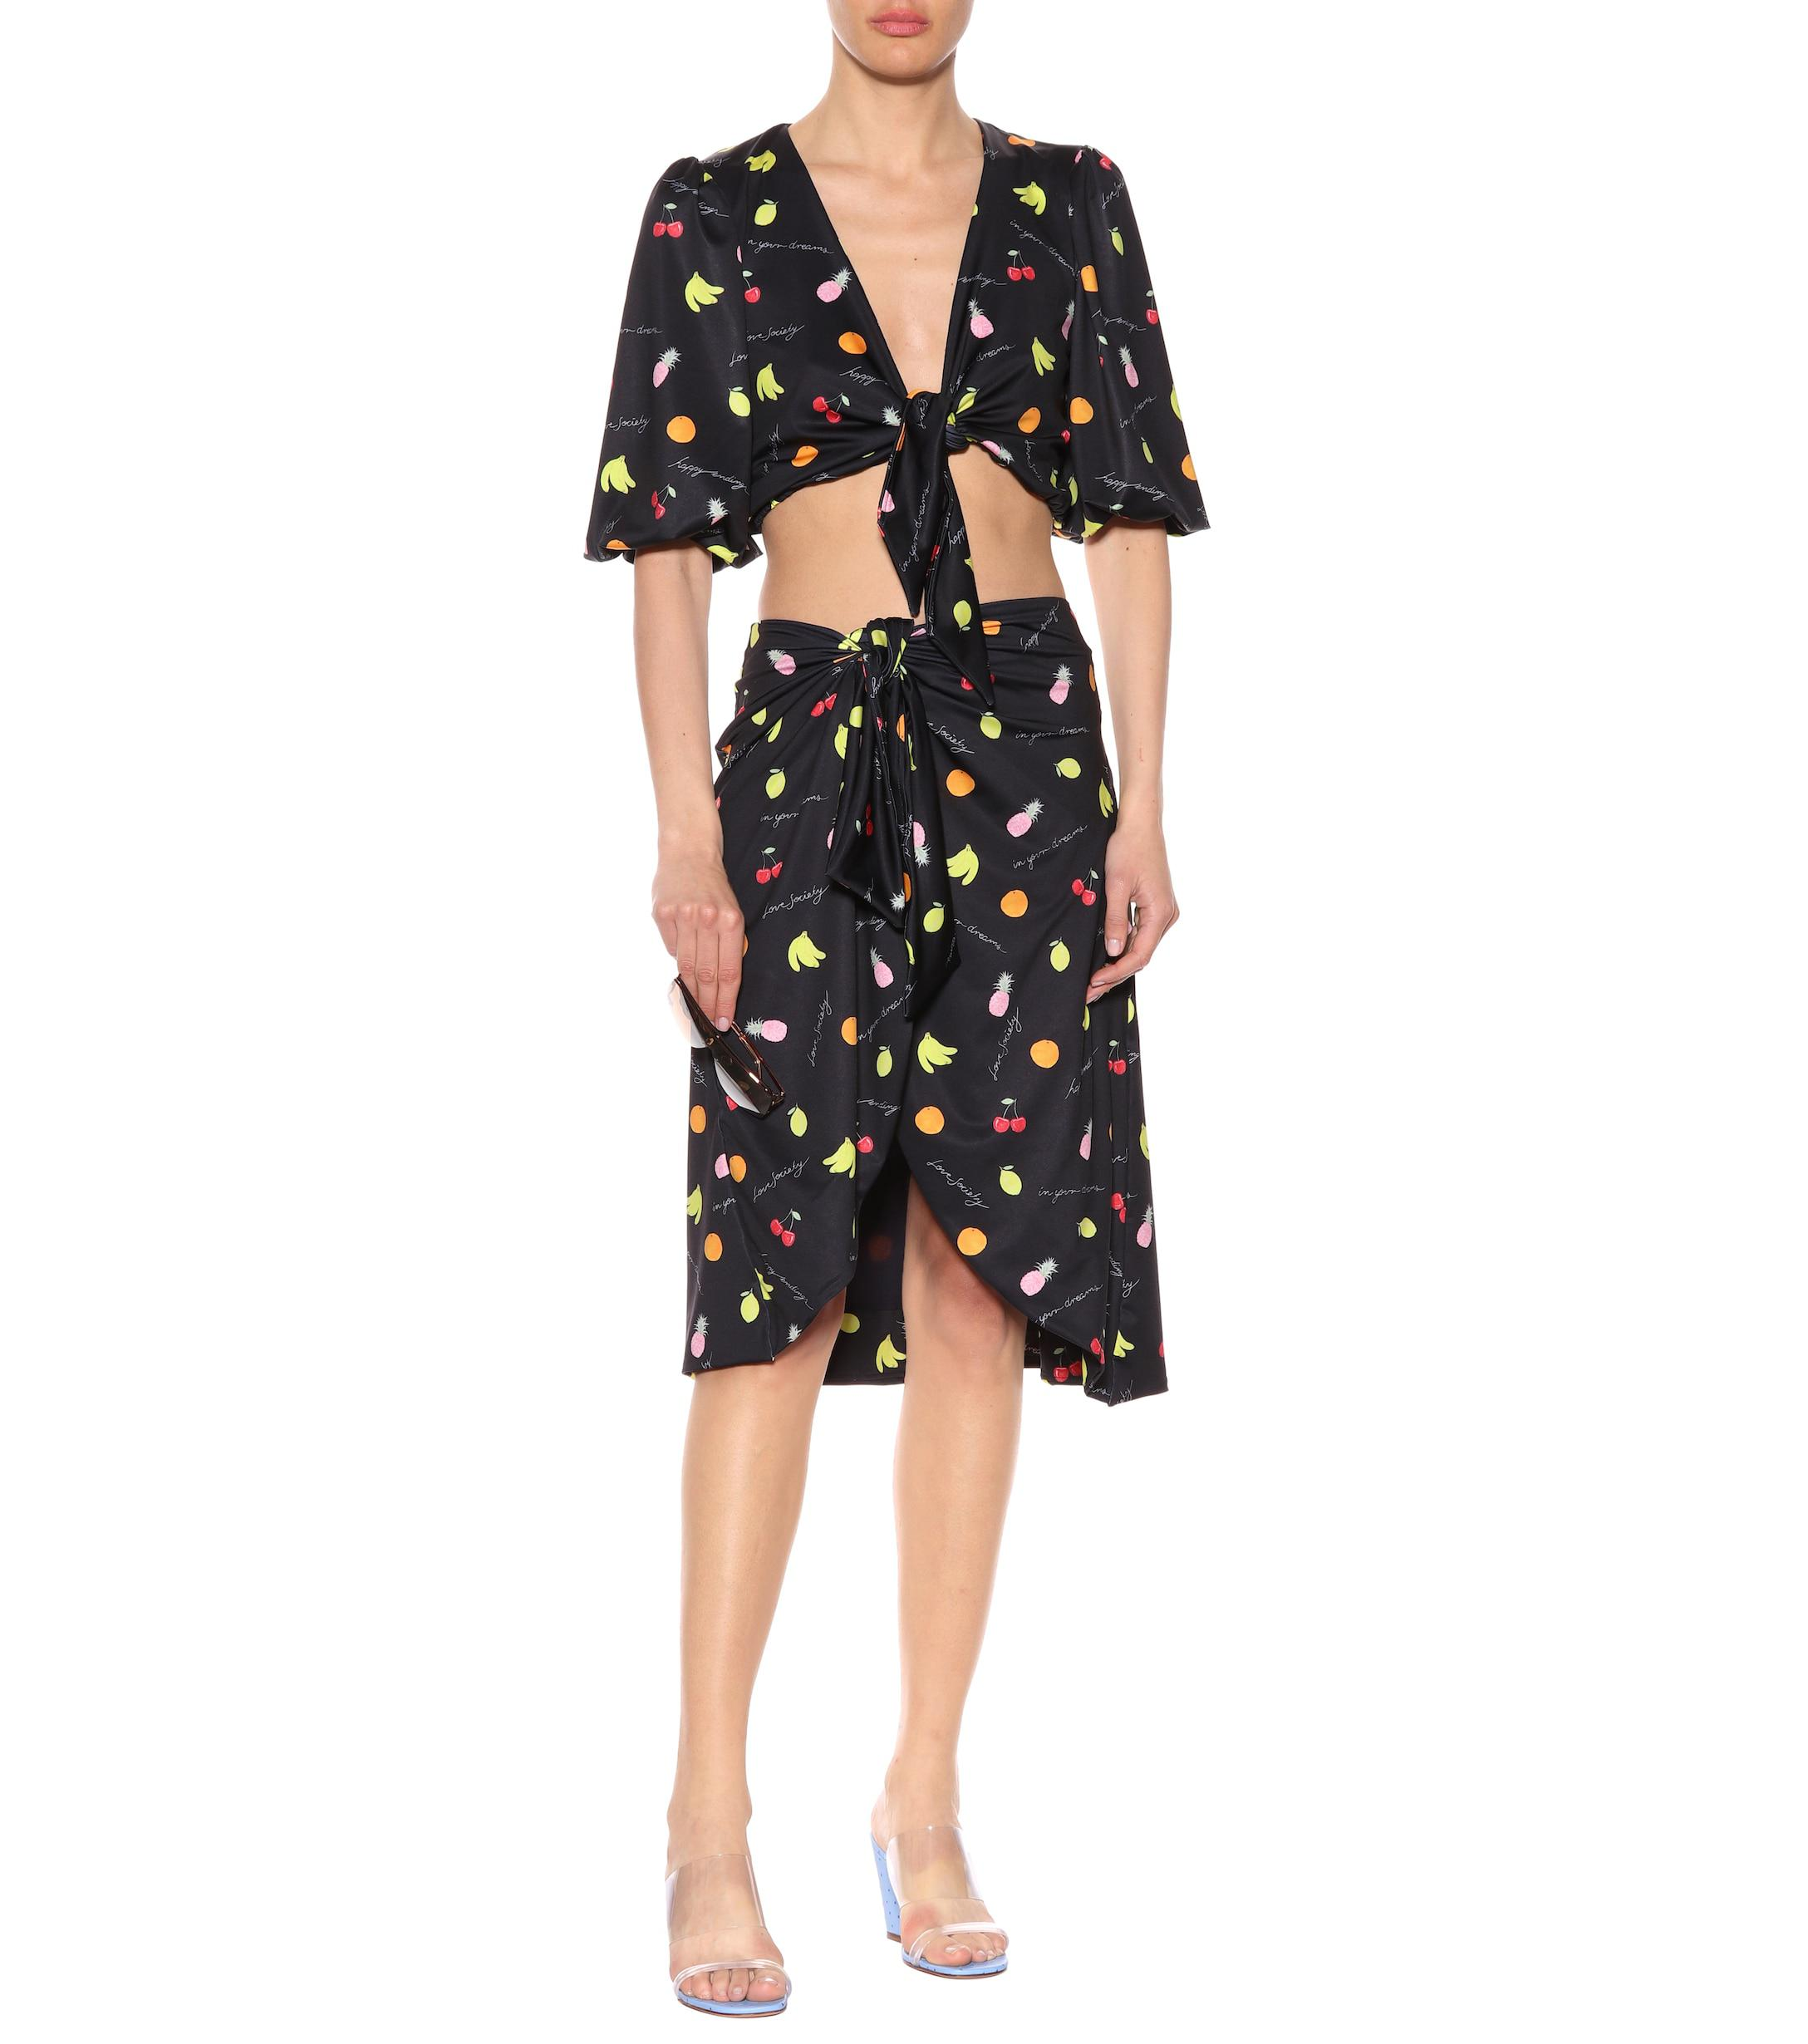 75c53e5f Ganni Exclusive To Mytheresa.com – Printed Crop Top in Black - Lyst